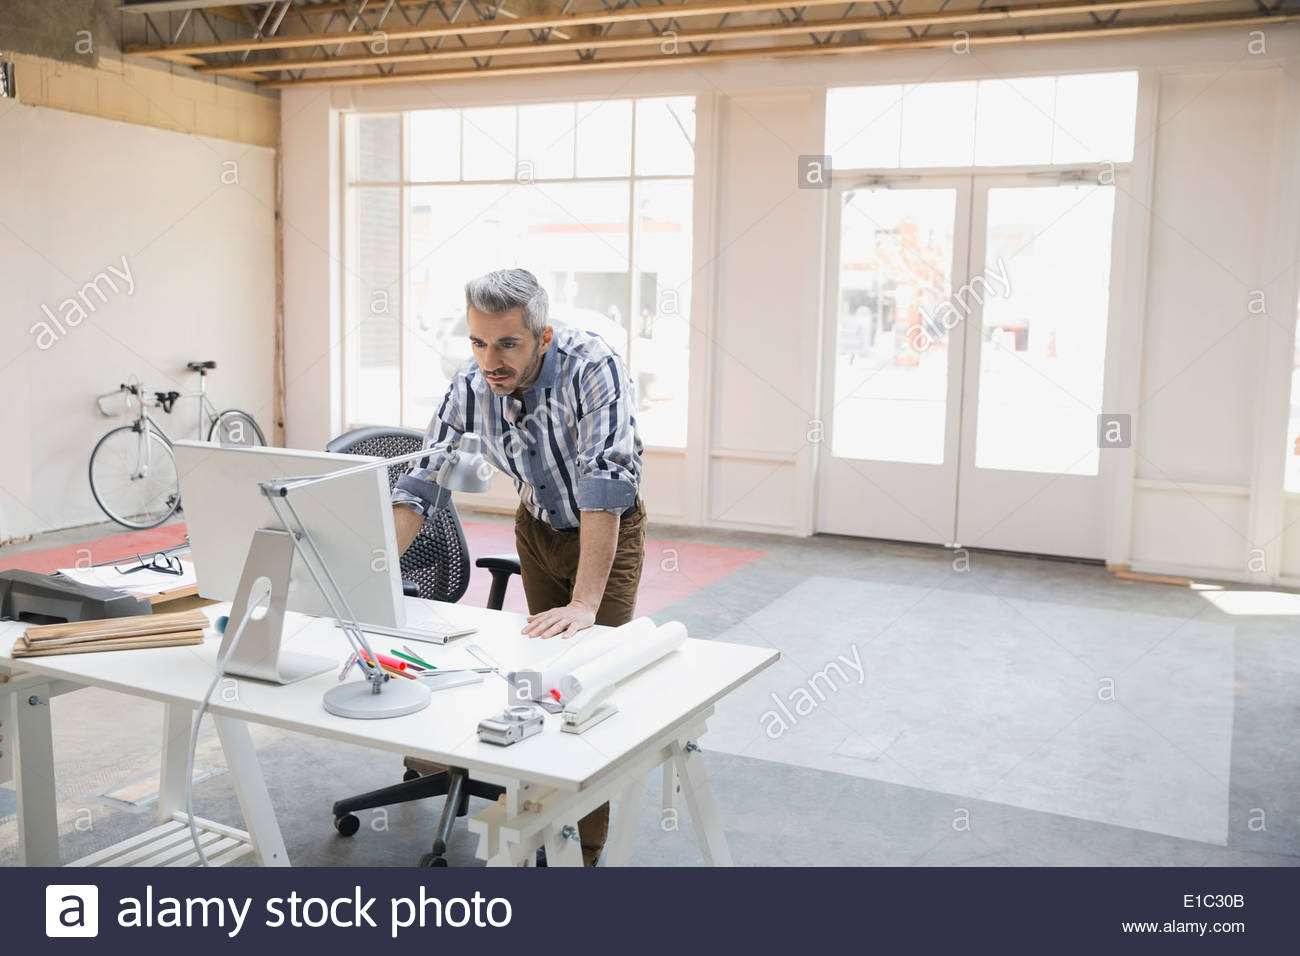 Businessman working at computer in new office - Stock Image